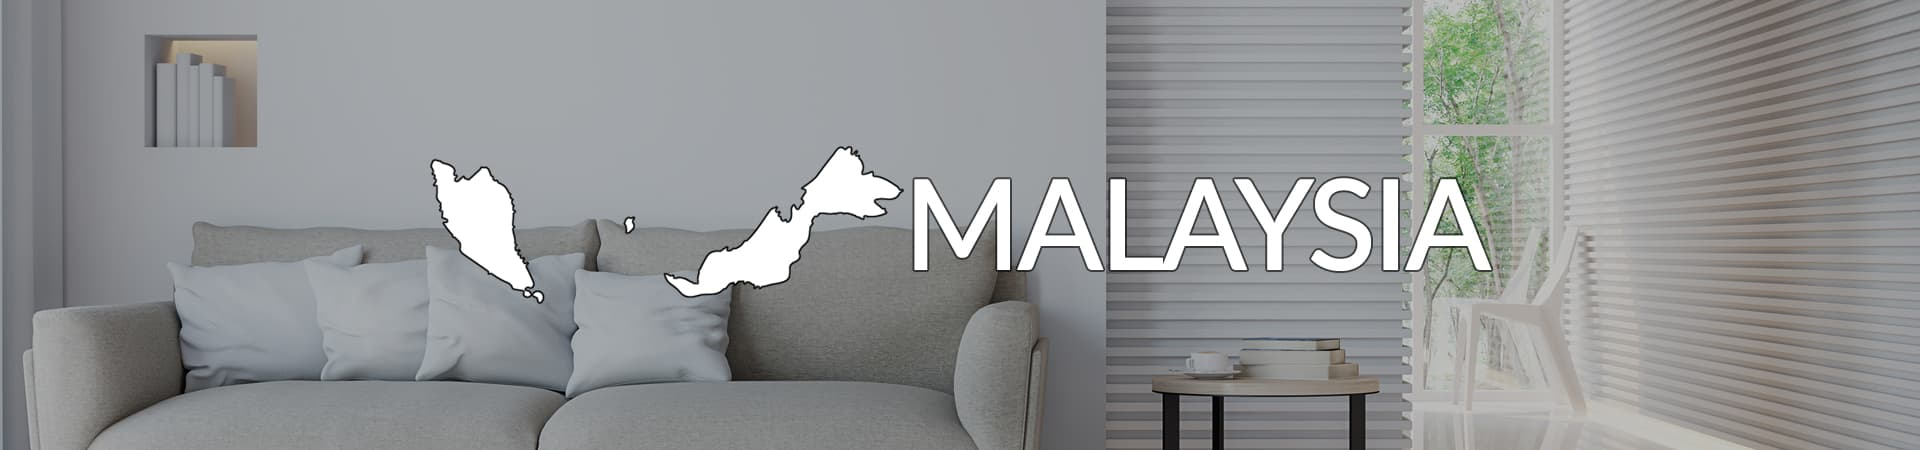 Housing in Malaysia banner